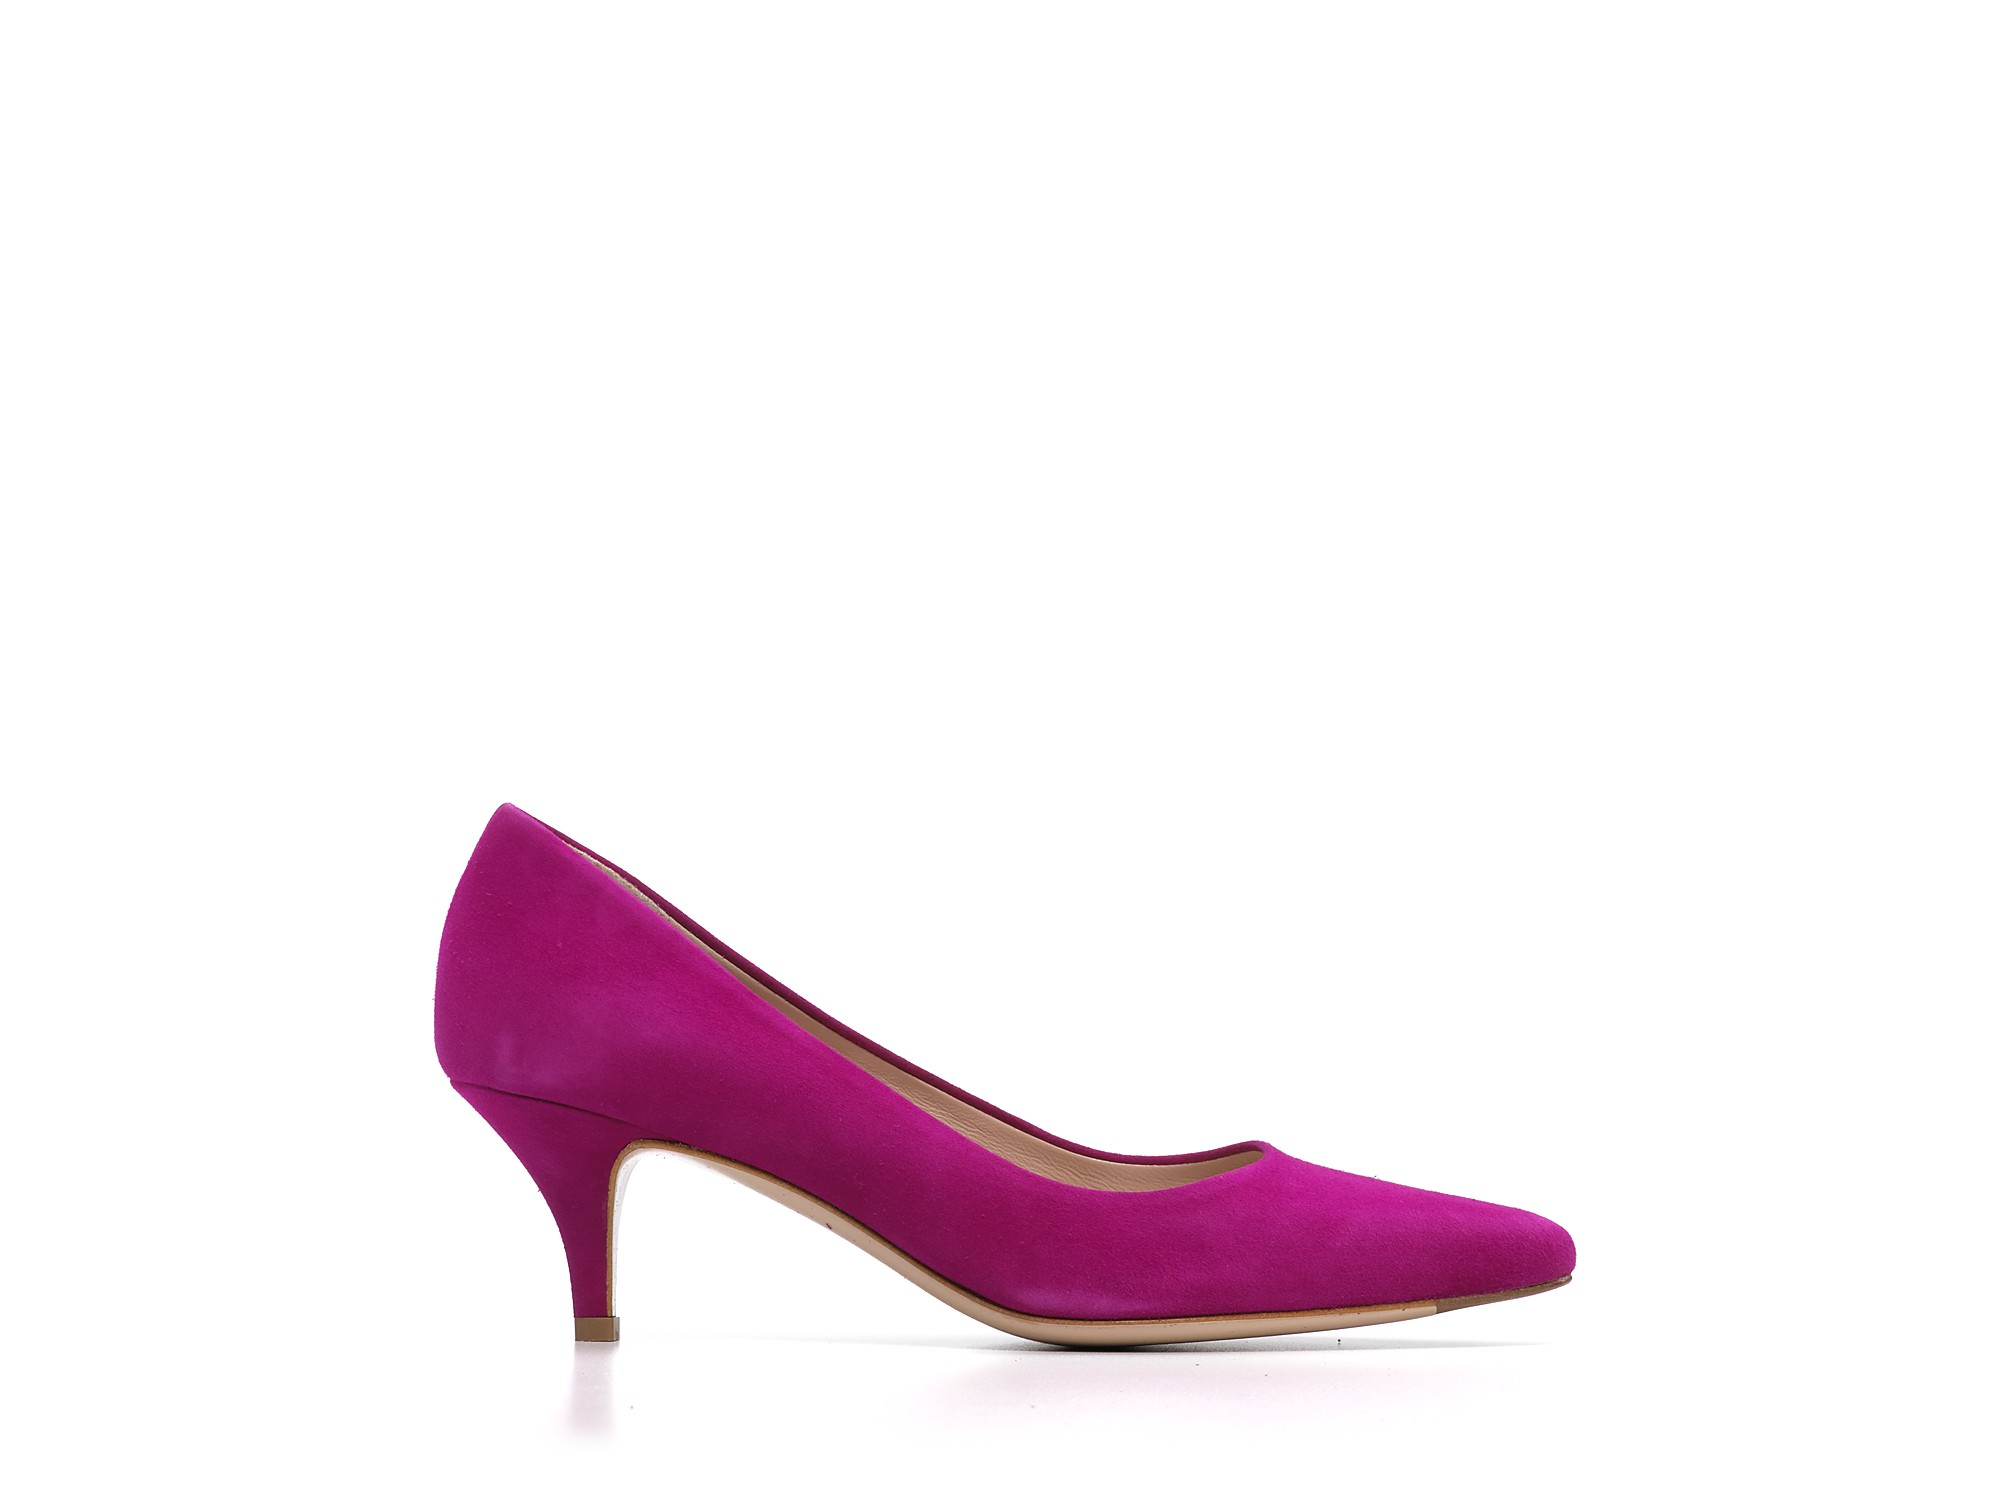 Ferragamo Pumps Dalia Kitten Heel in Purple | Lyst